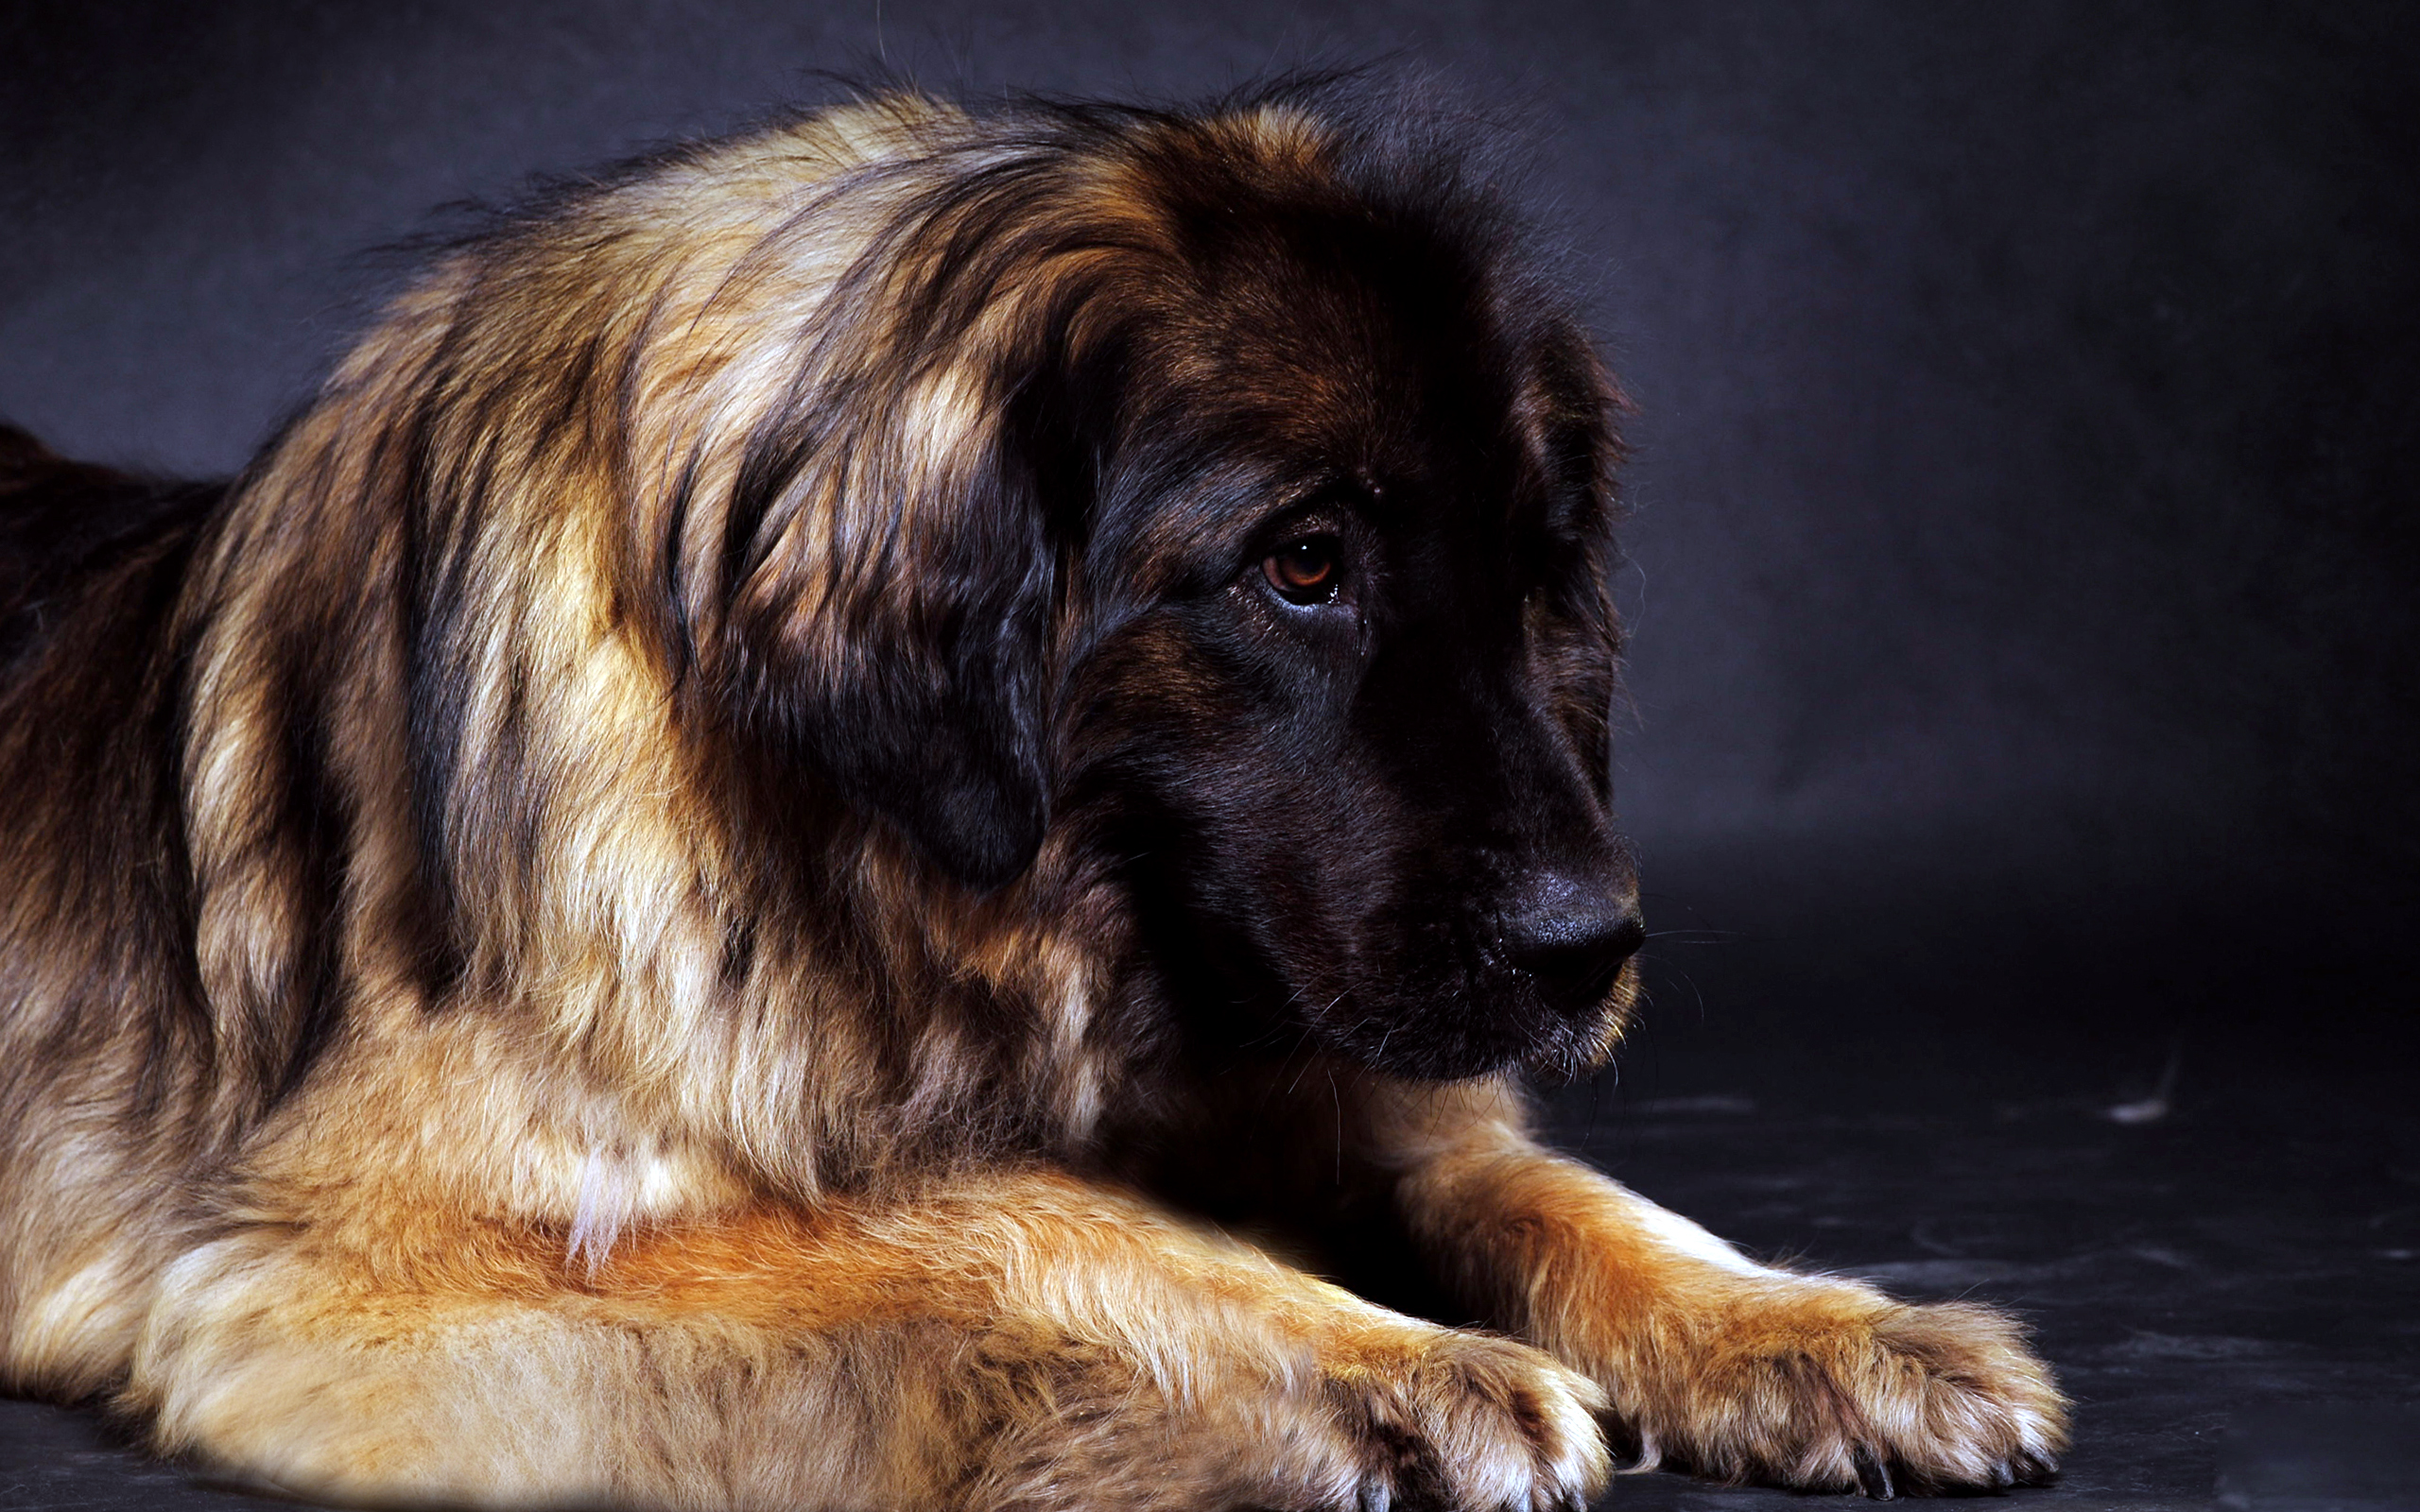 Cars Wallpapers In Full Hd Best Leonberger Dog Free Download Wallpapers Hd Desktop